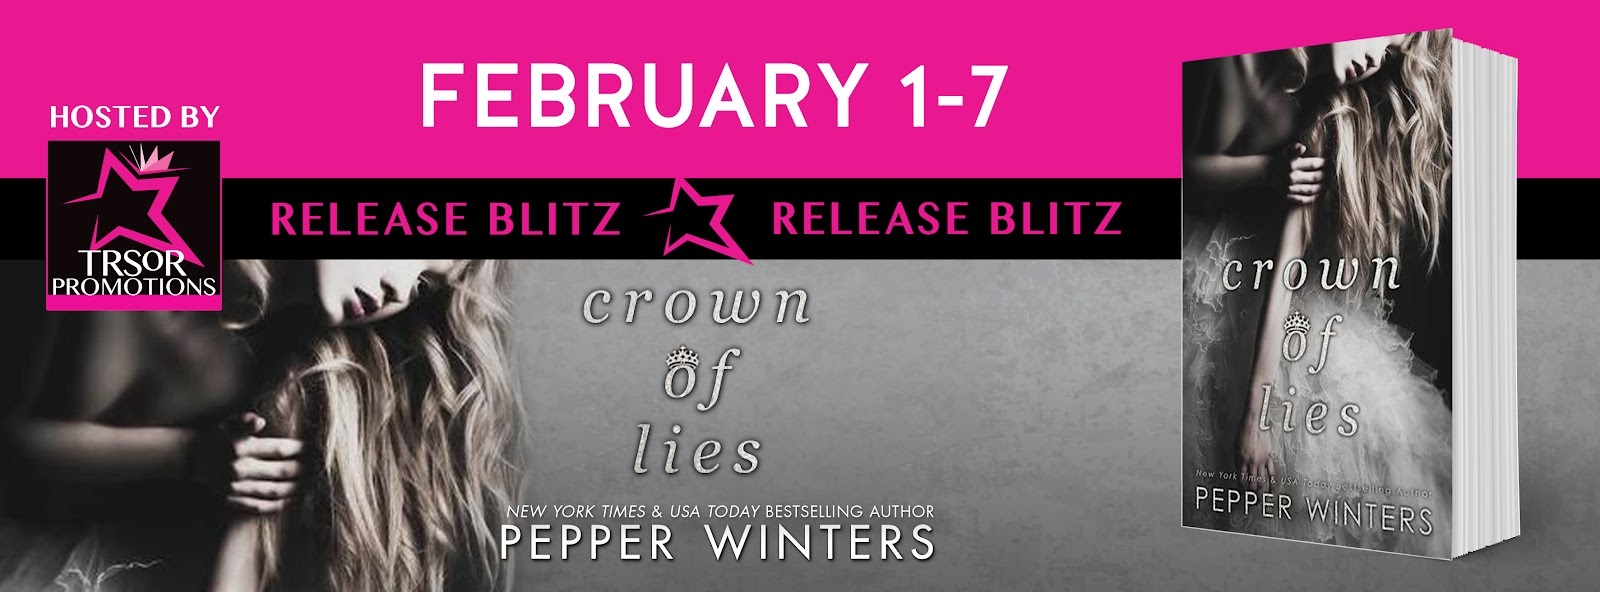 CROWN_LIES_RELEASE_BLITZ.jpg